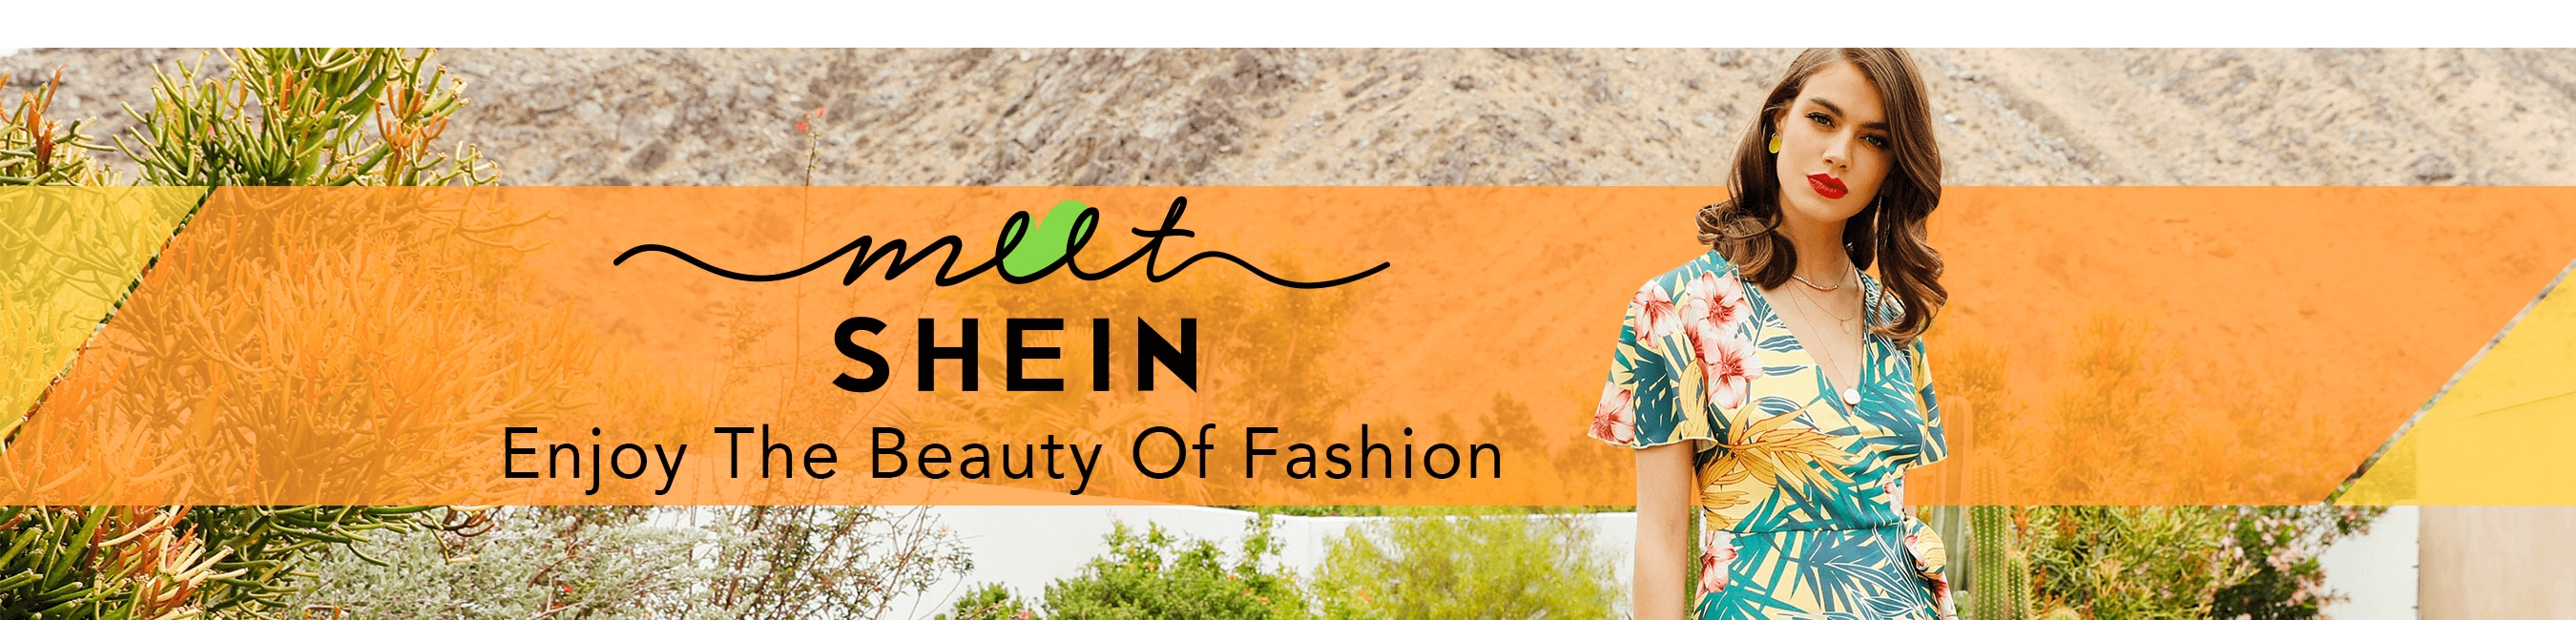 7313efce1a Shop Women's Clothing, Shoes, Bags & more online | SHEIN IN